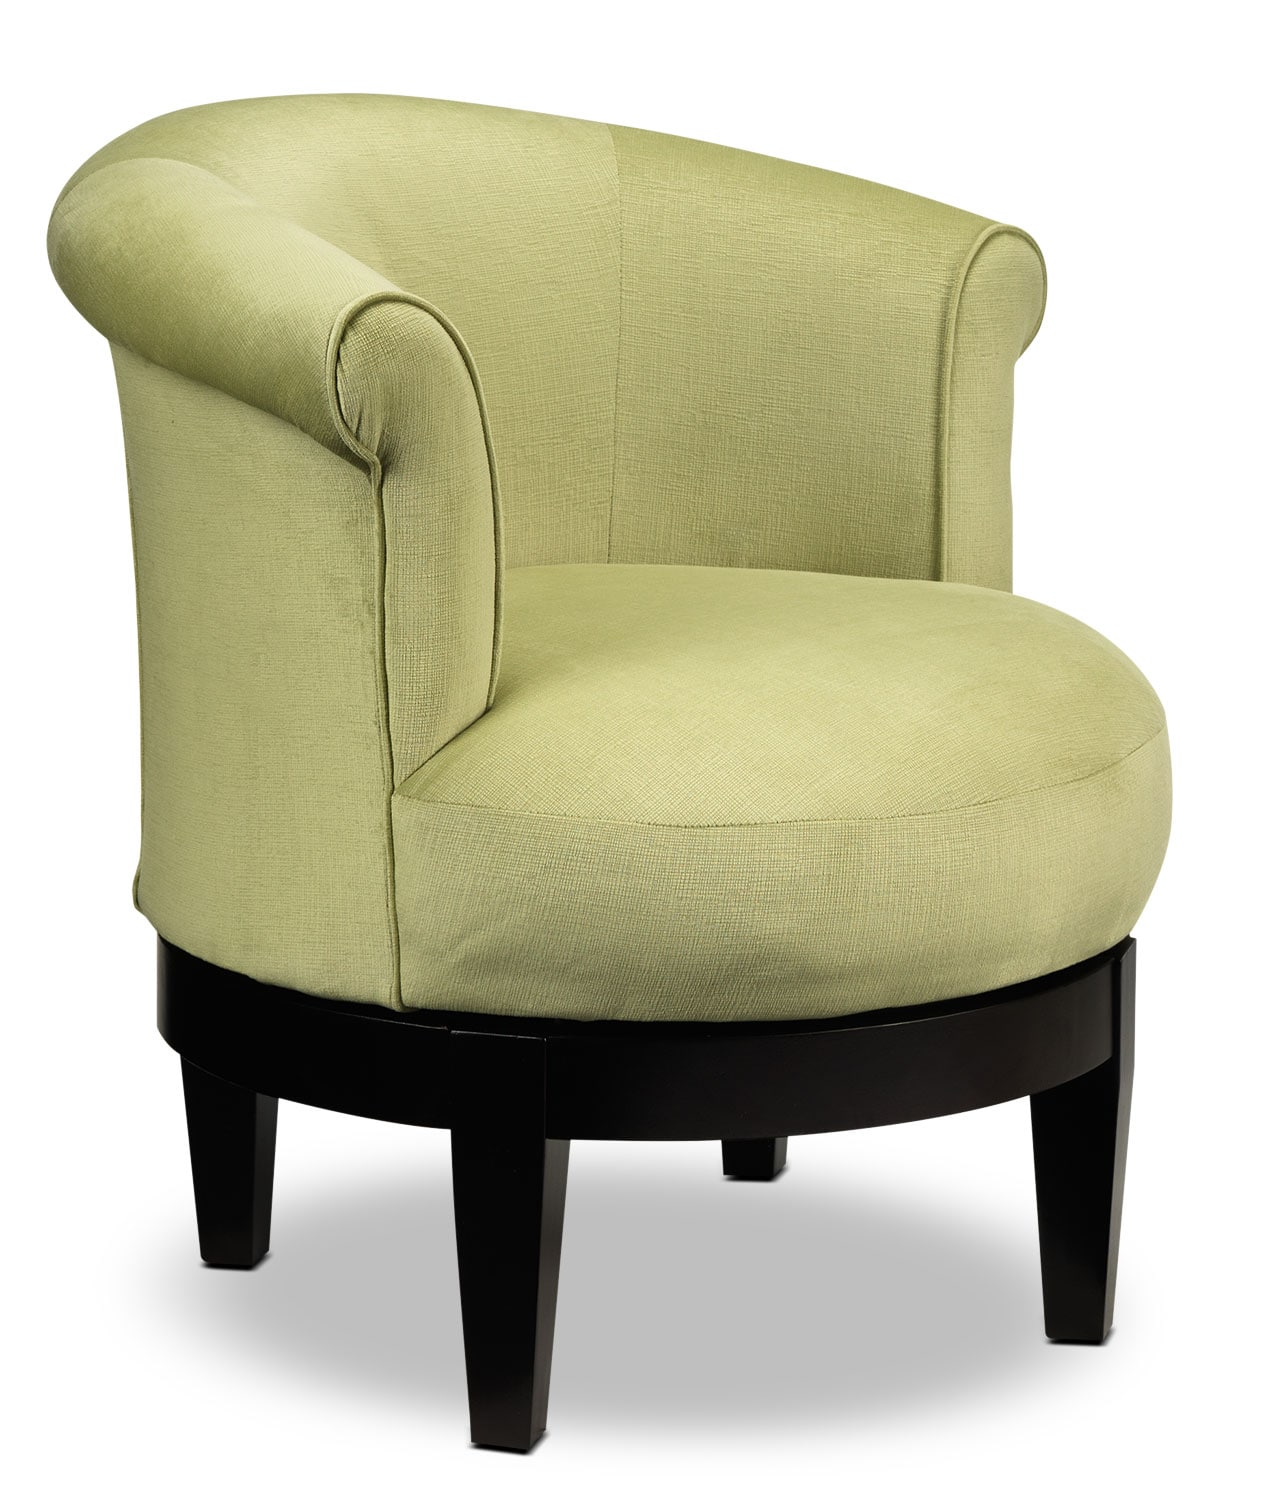 Swival Chairs Lemoore Accent Swivel Chair Lime Furniture Ca